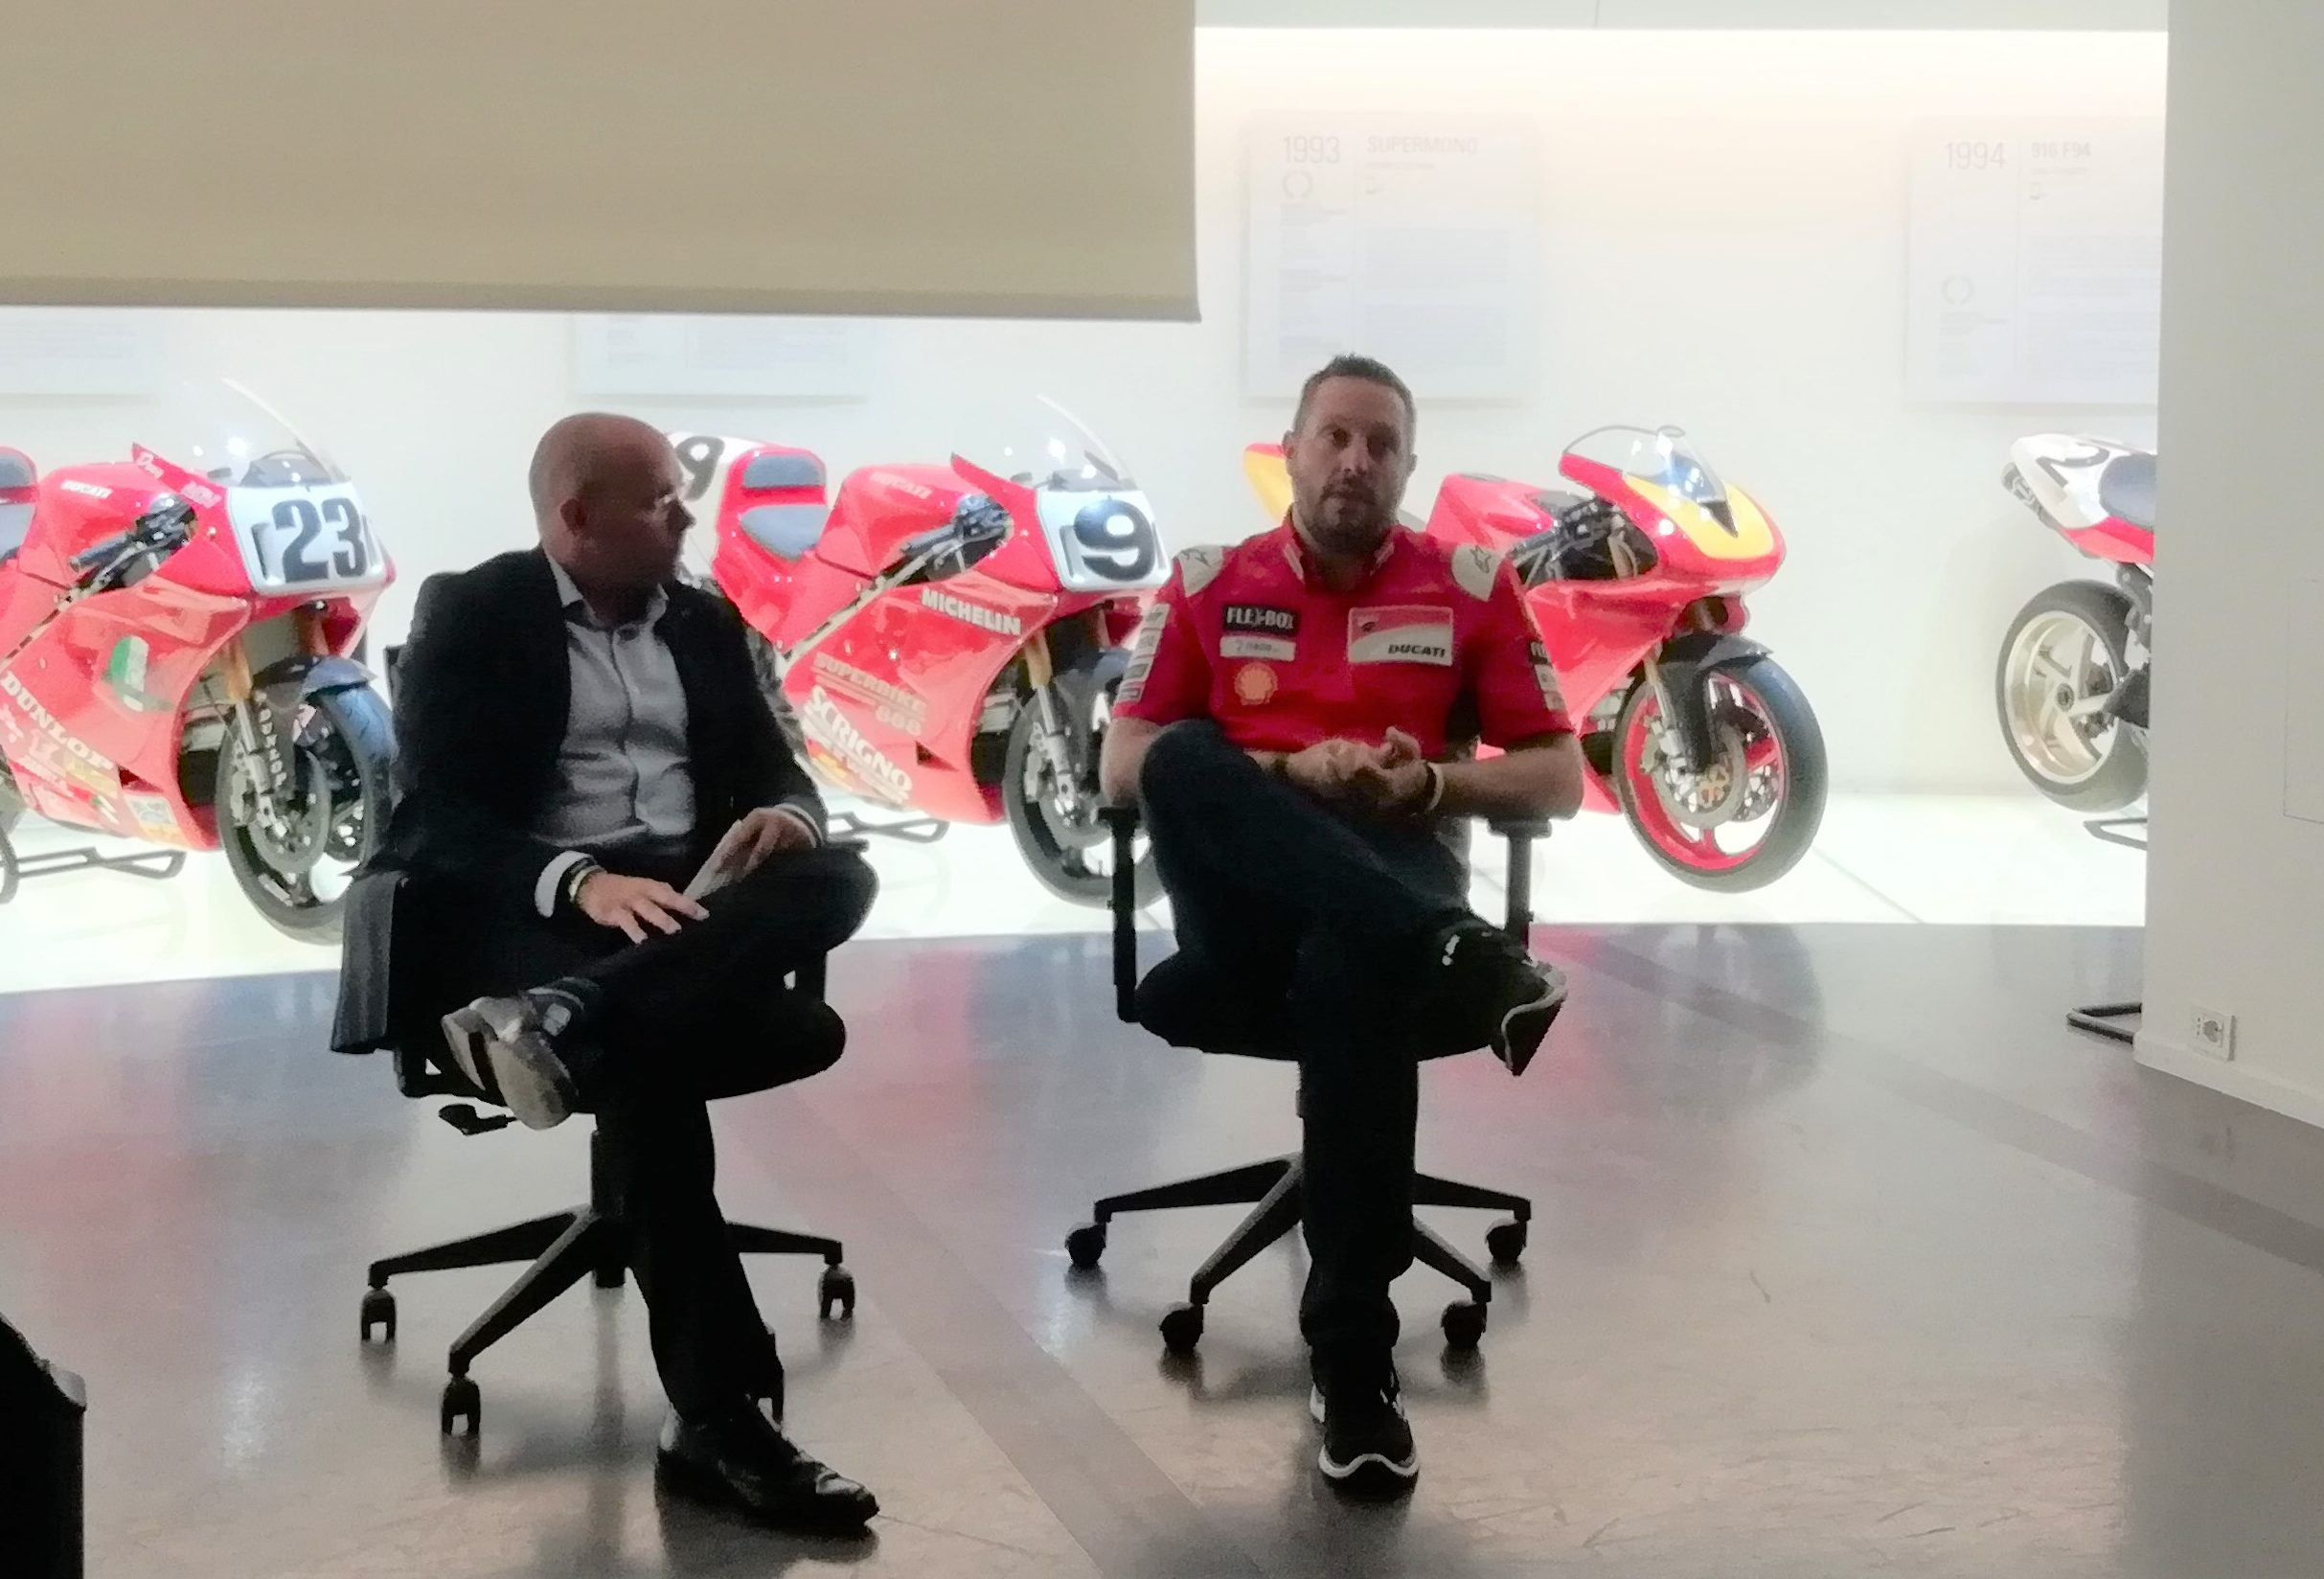 Stefano Rendina, IT Manager, Ducati Corse intervistato da Denis Nalon, Marketing Manager, NetApp